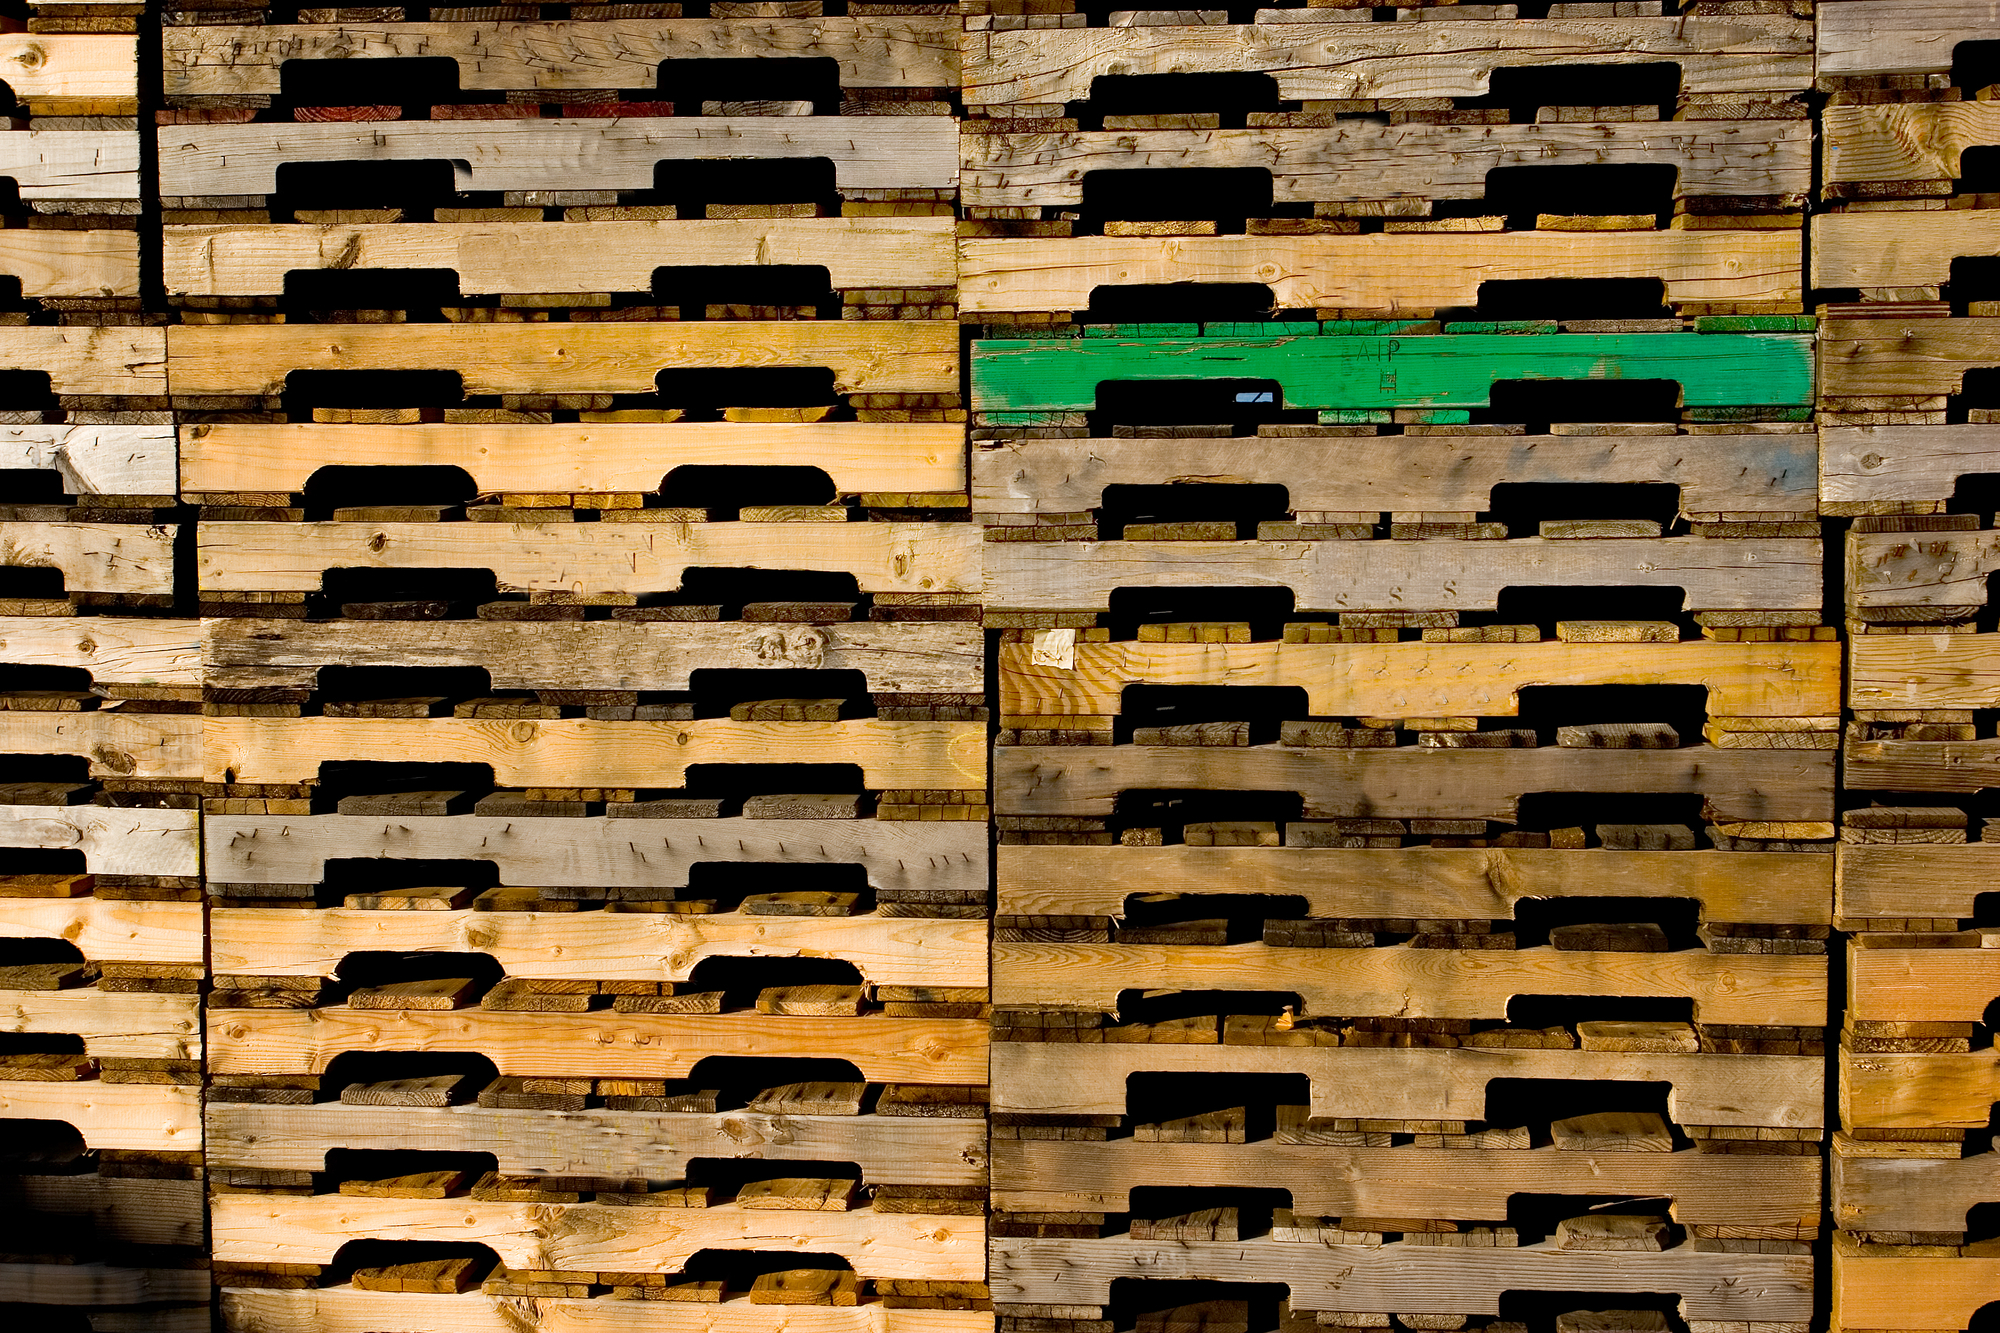 pile of used pallets for sale.